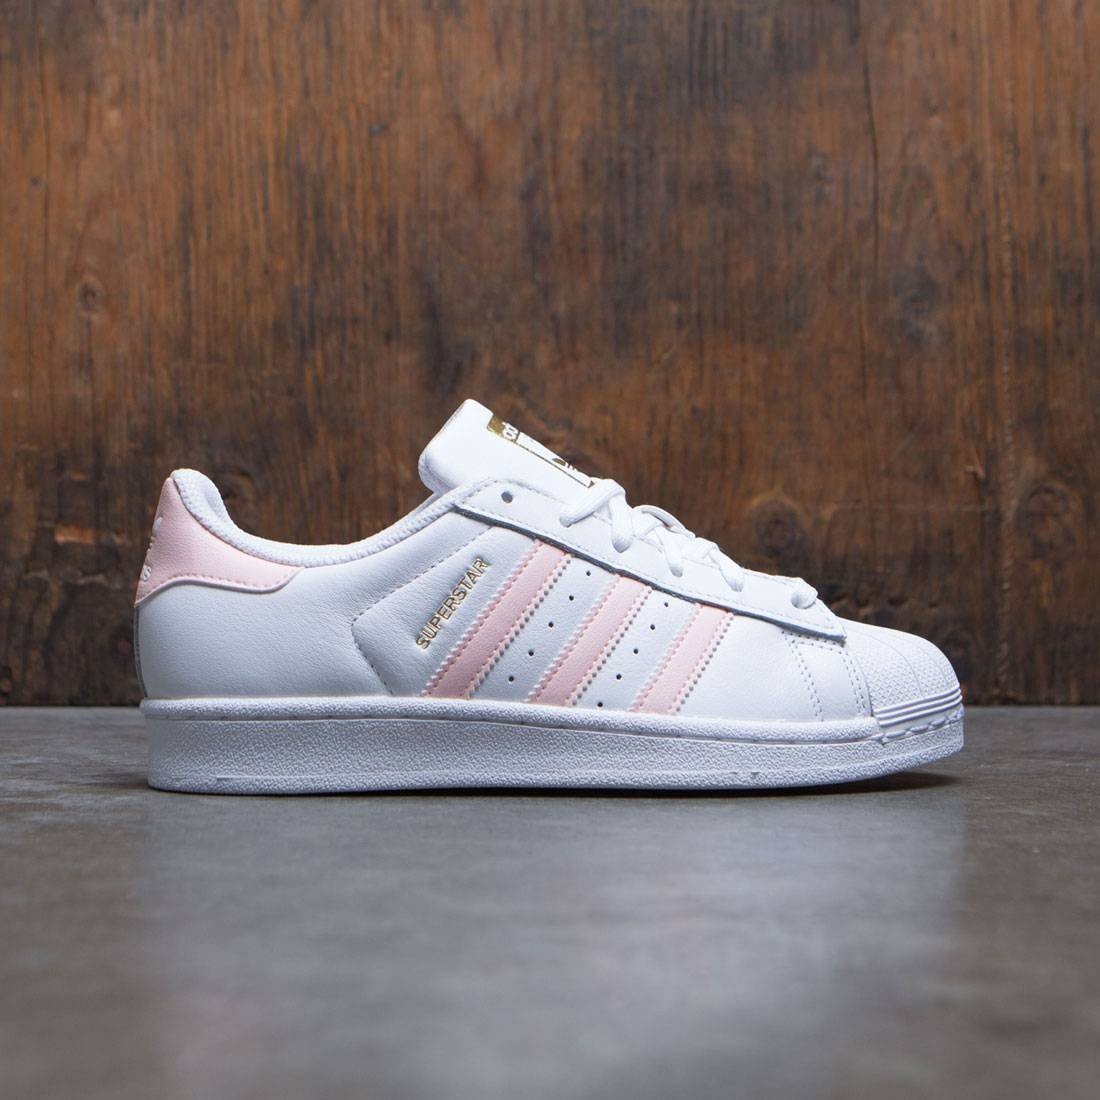 adidas rose gold metallic